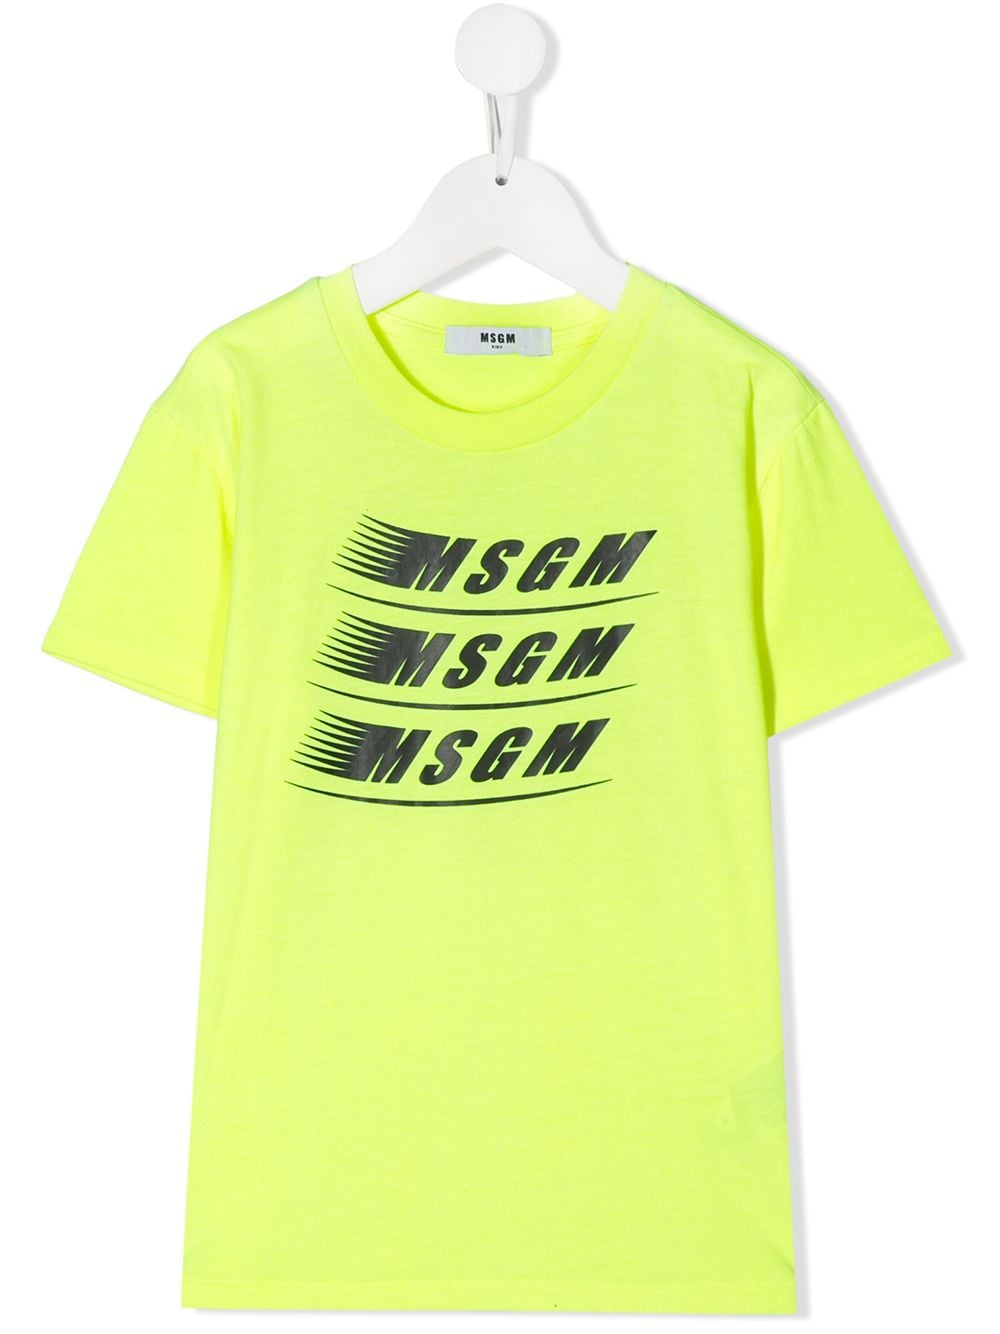 MSGM Yellow T-shirt with dashing logo